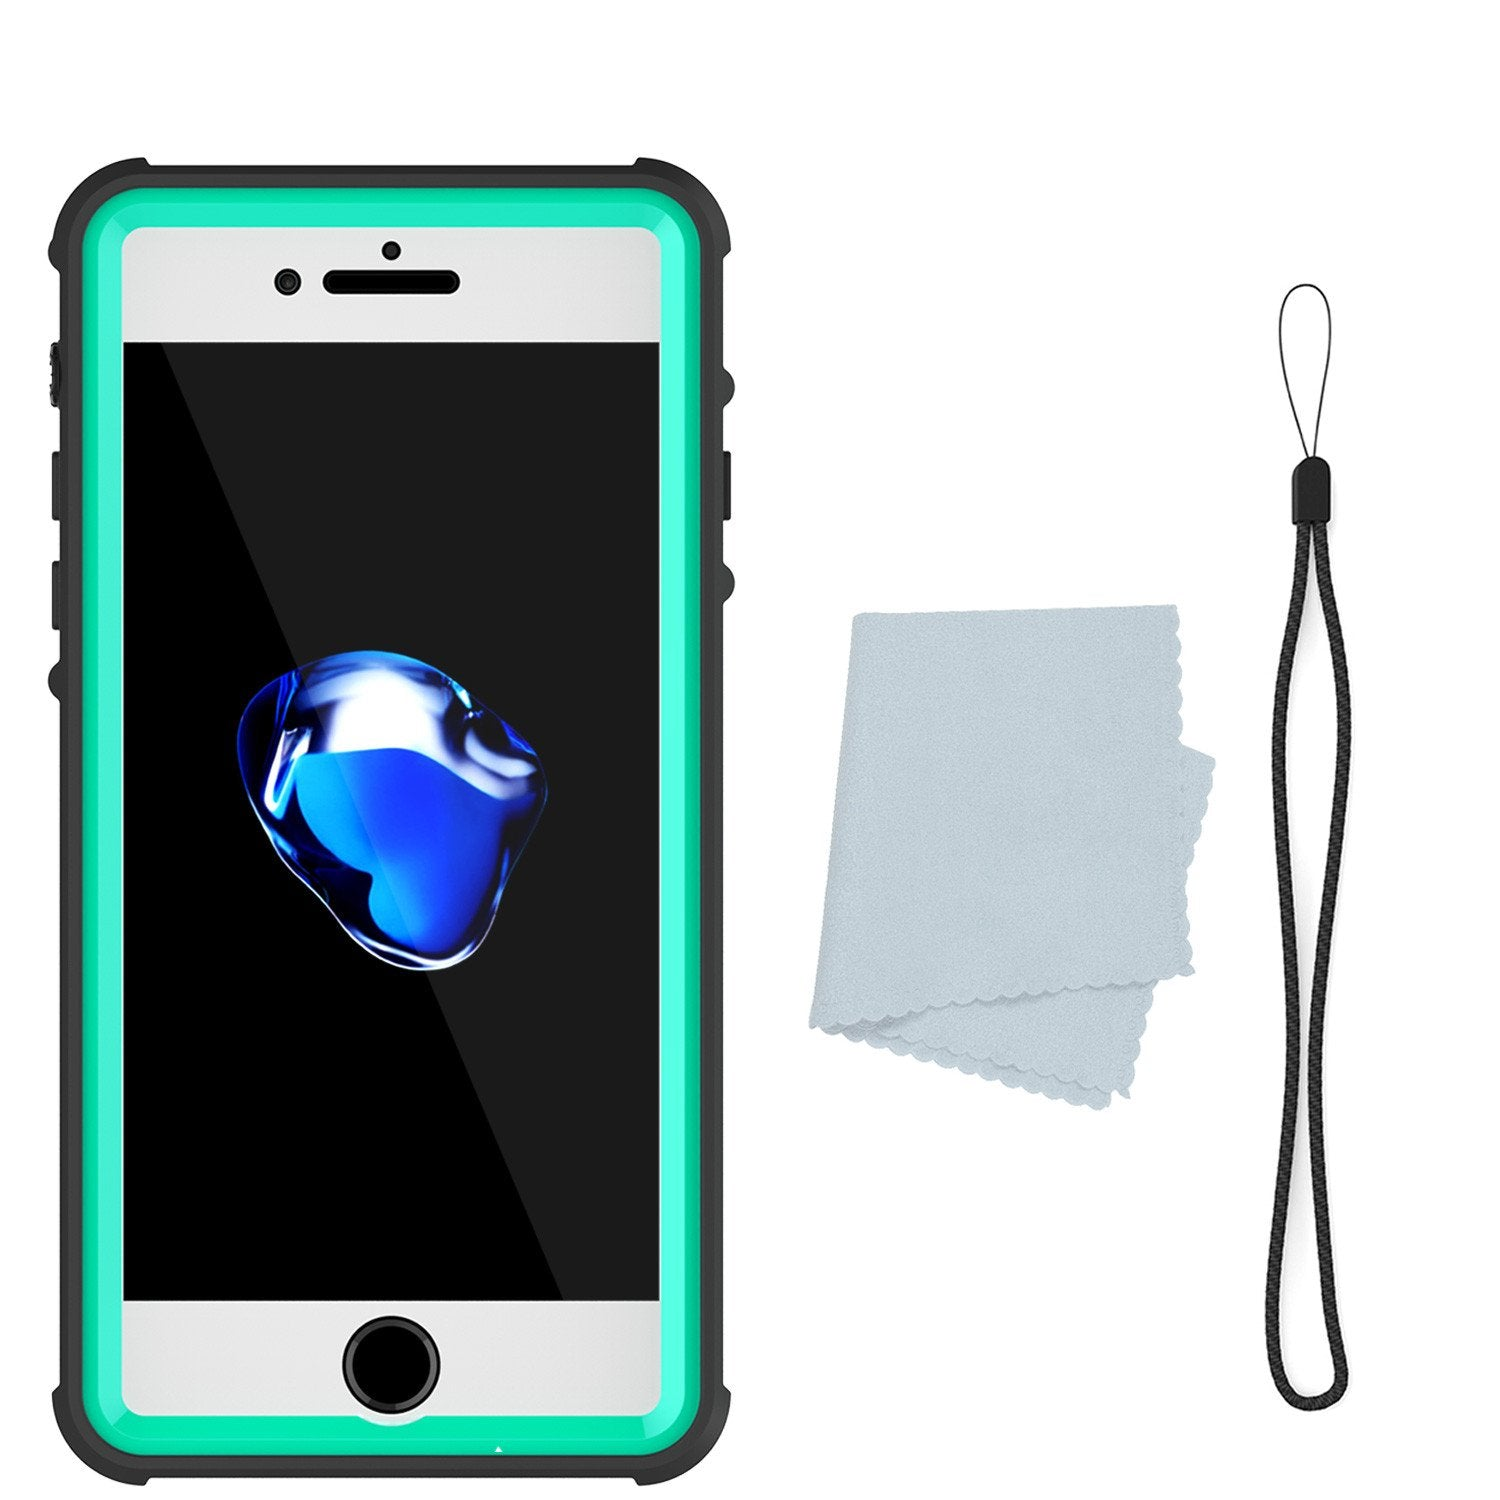 iPhone 8 Waterproof Case, PUNKCase [CRYSTAL SERIES] W/ Attached Screen Protector [TEAL]